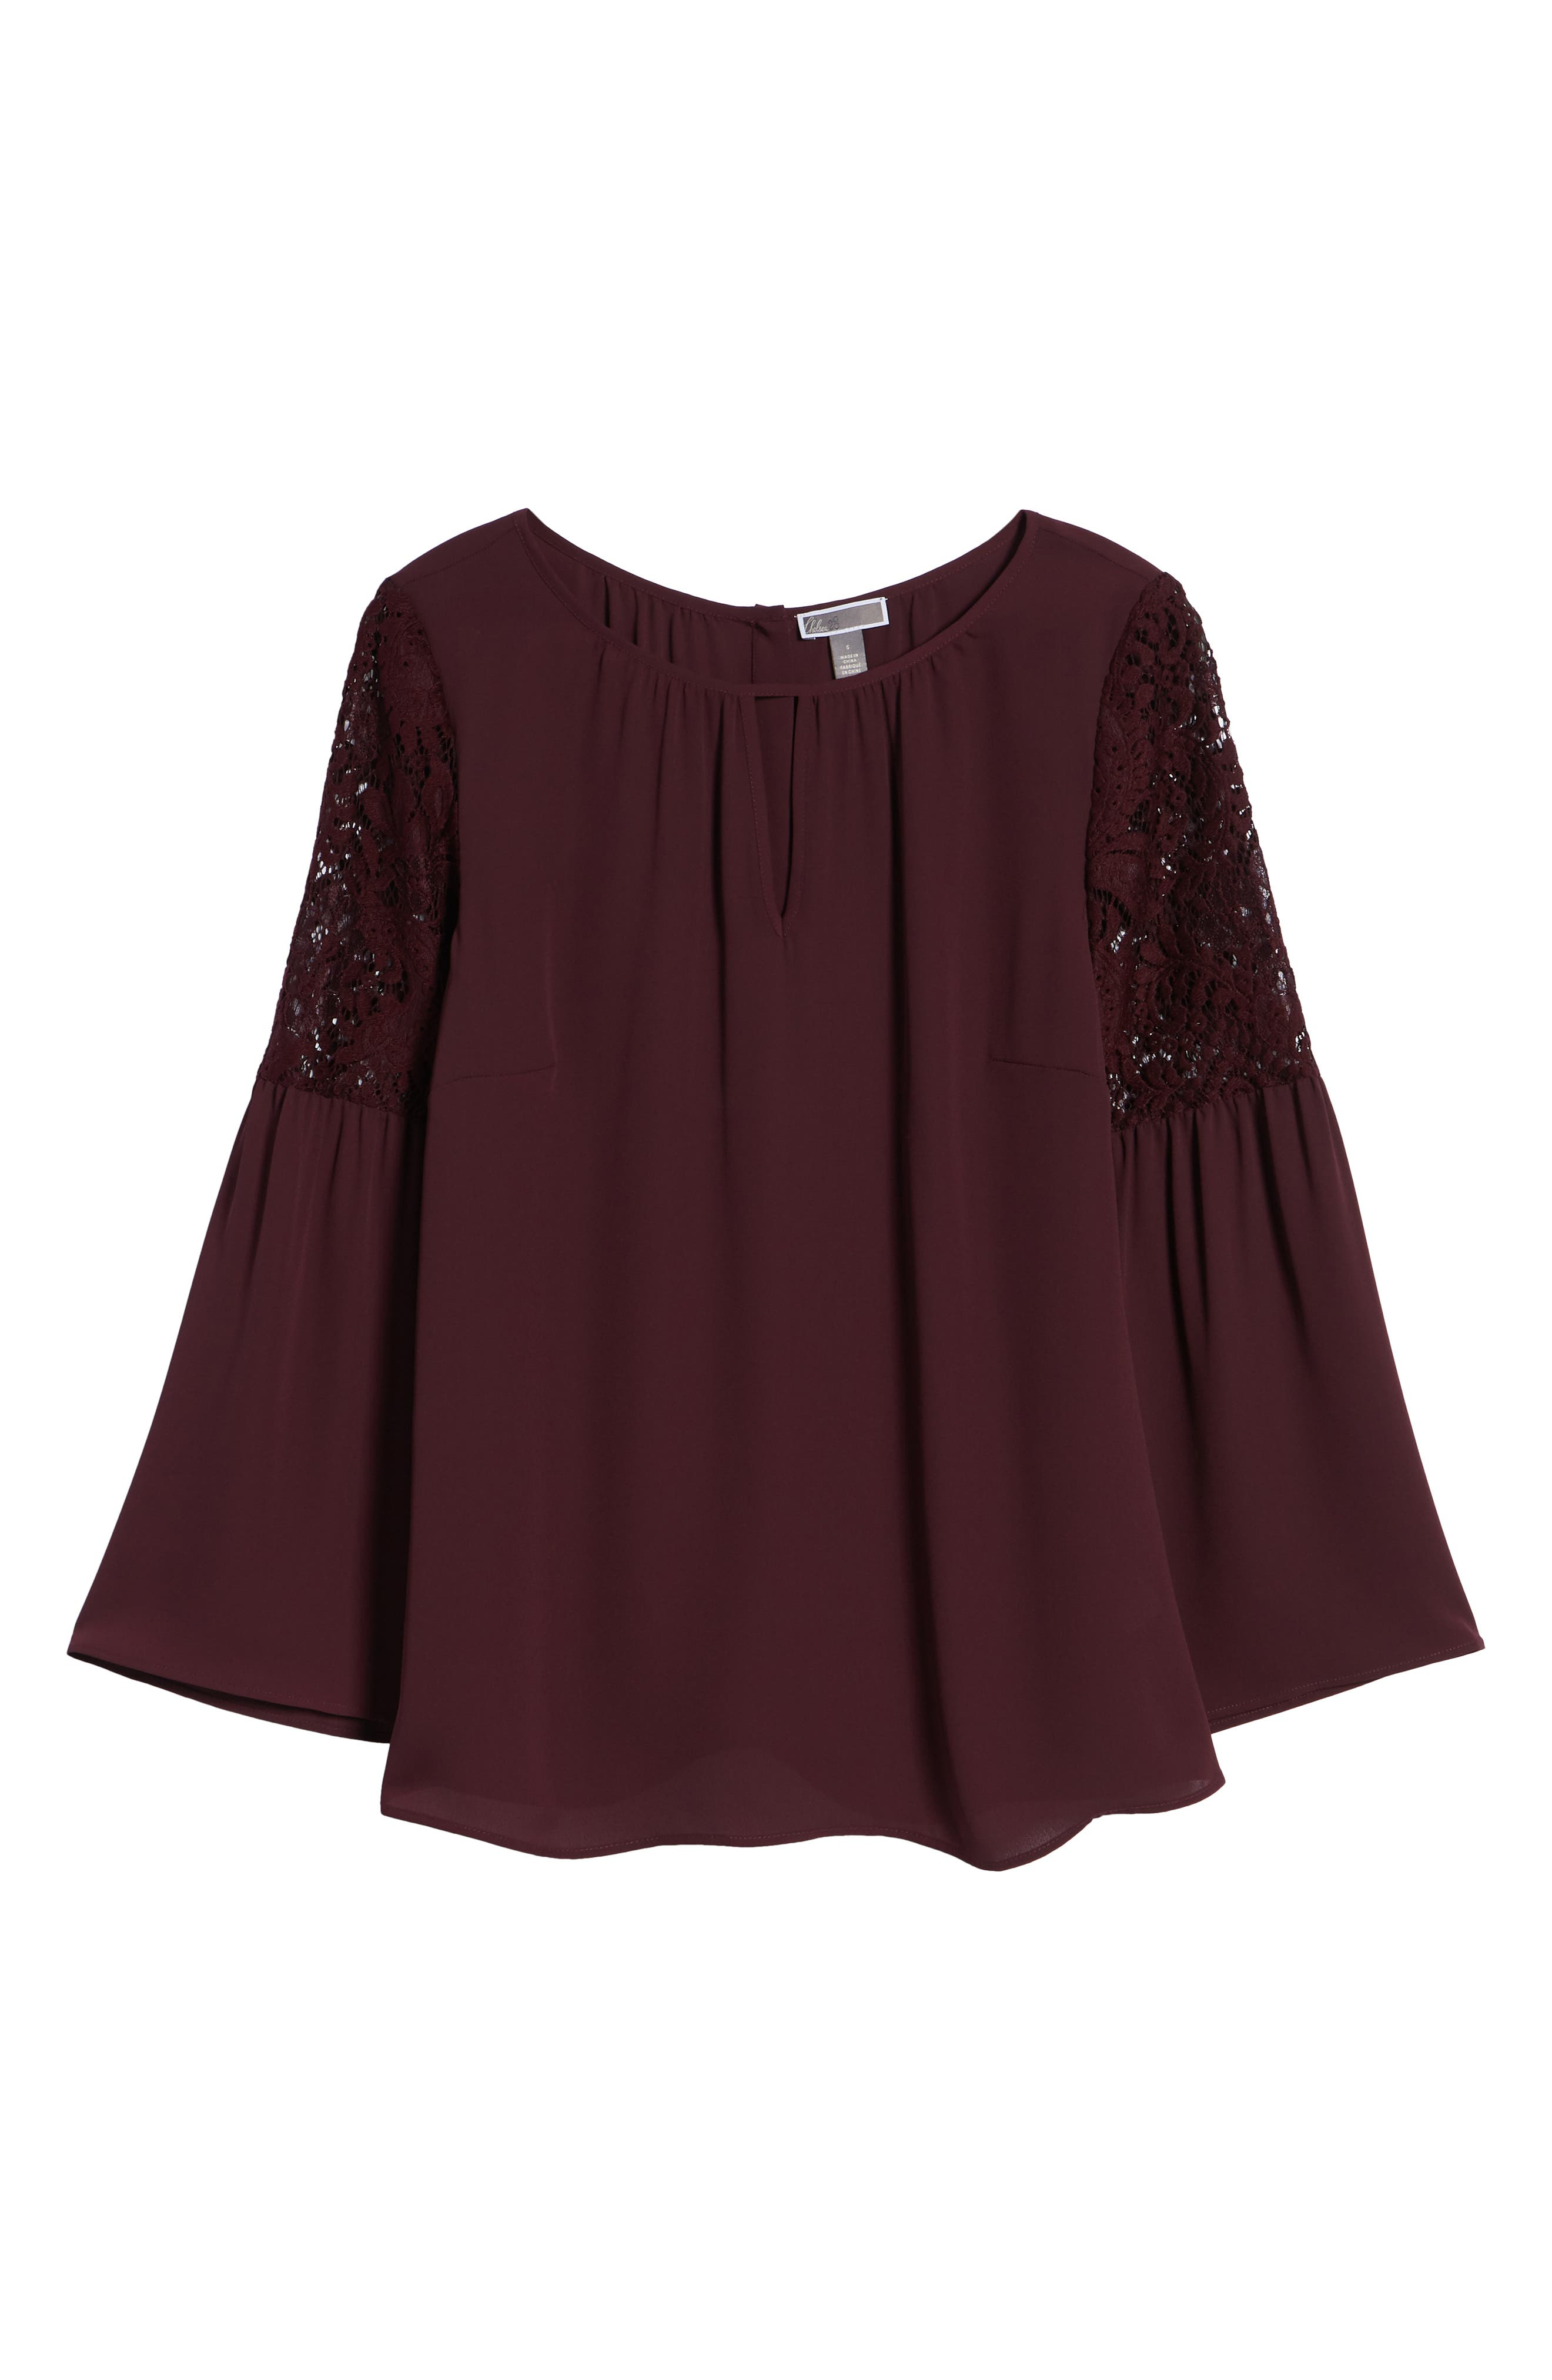 Lace Bell Sleeve Top,                             Alternate thumbnail 7, color,                             BURGUNDY STEM